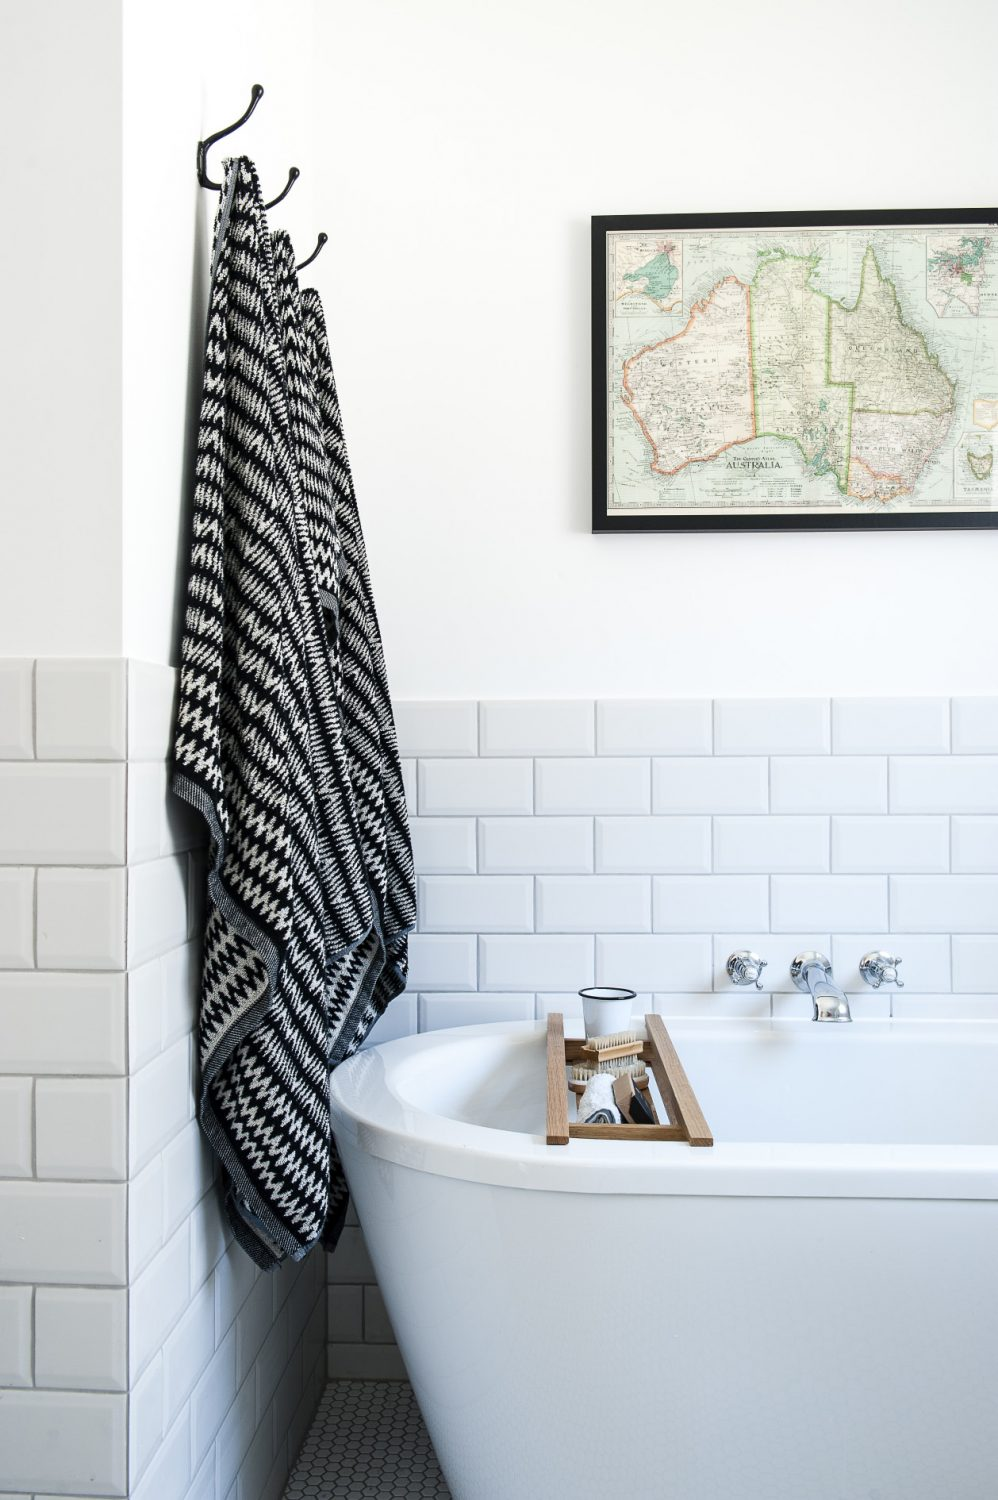 The bath in the ground floor master bathroom is from Patons of Walton and the black and white towels are from House of Fraser. The map of Australia is a piece of wrapping paper from Willow & Stone, which Jenna had framed